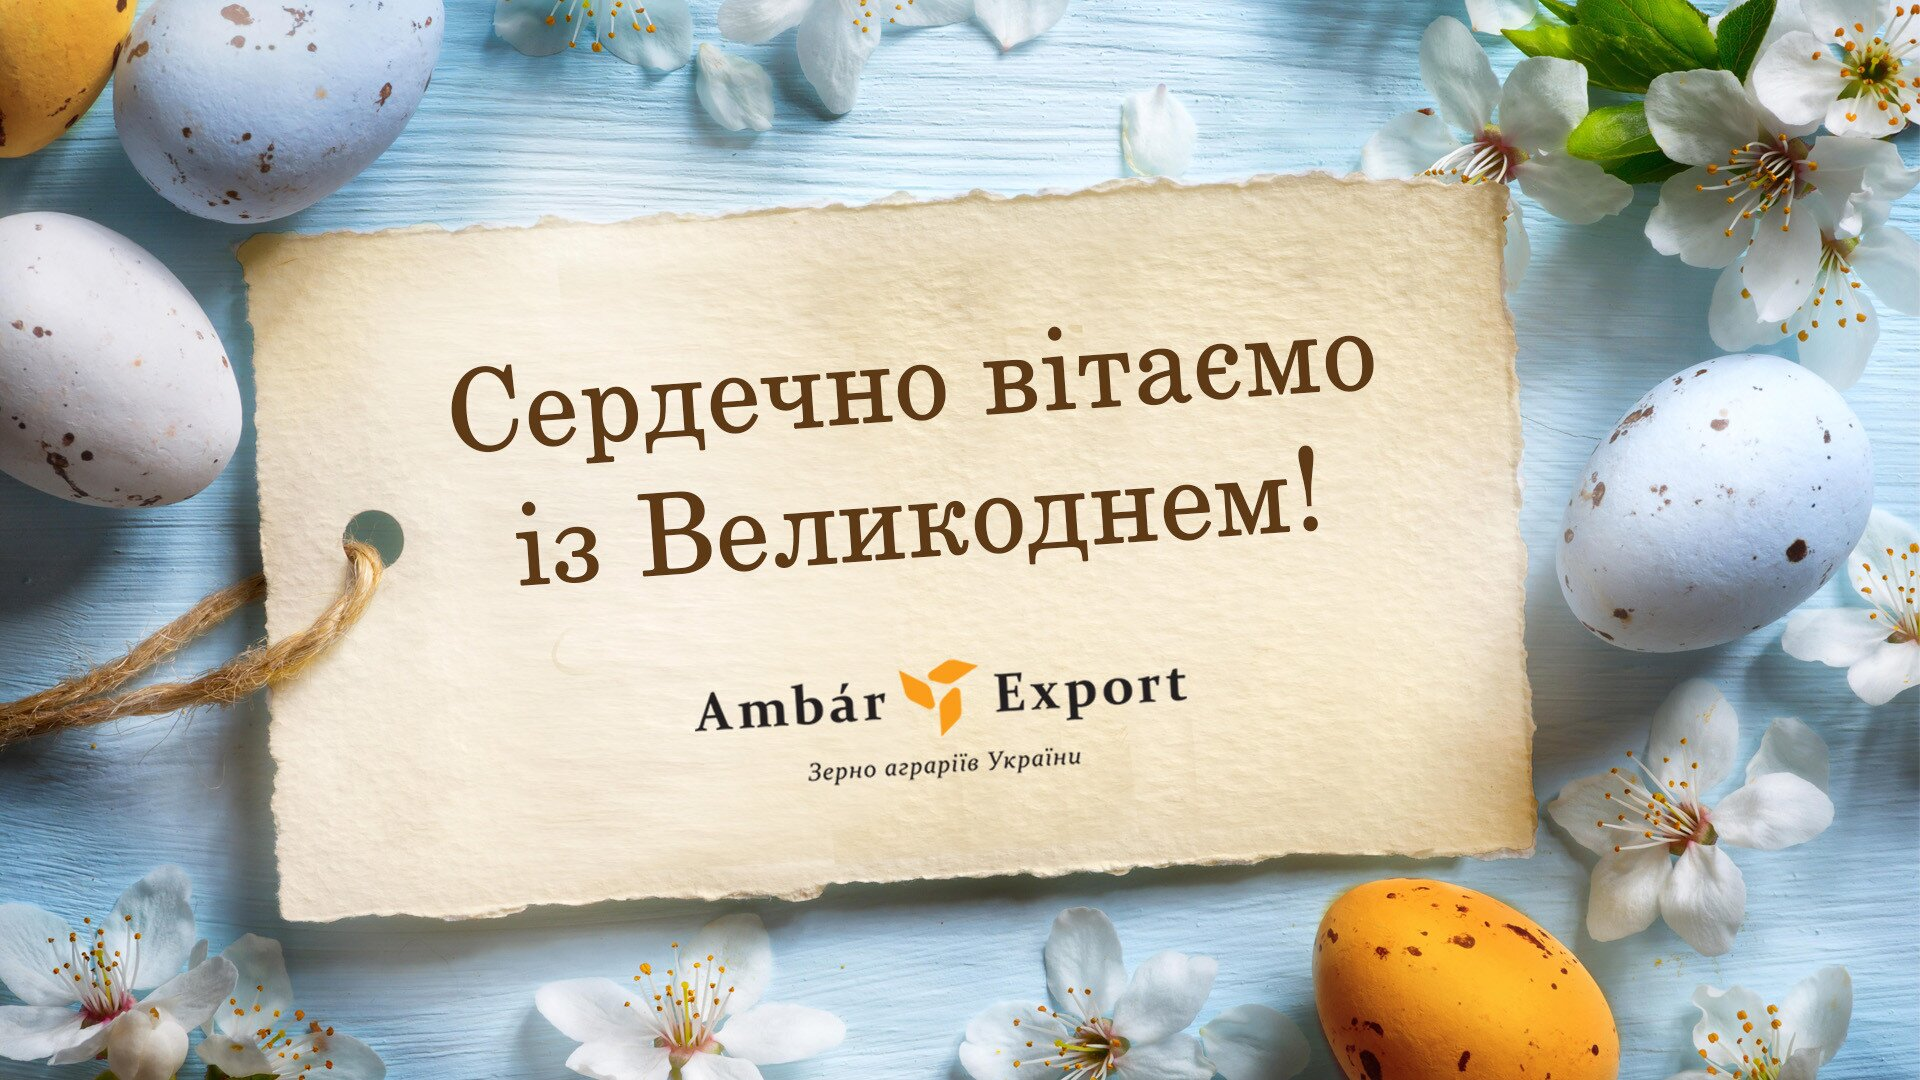 Сердечно вітаємо із Великоднем!